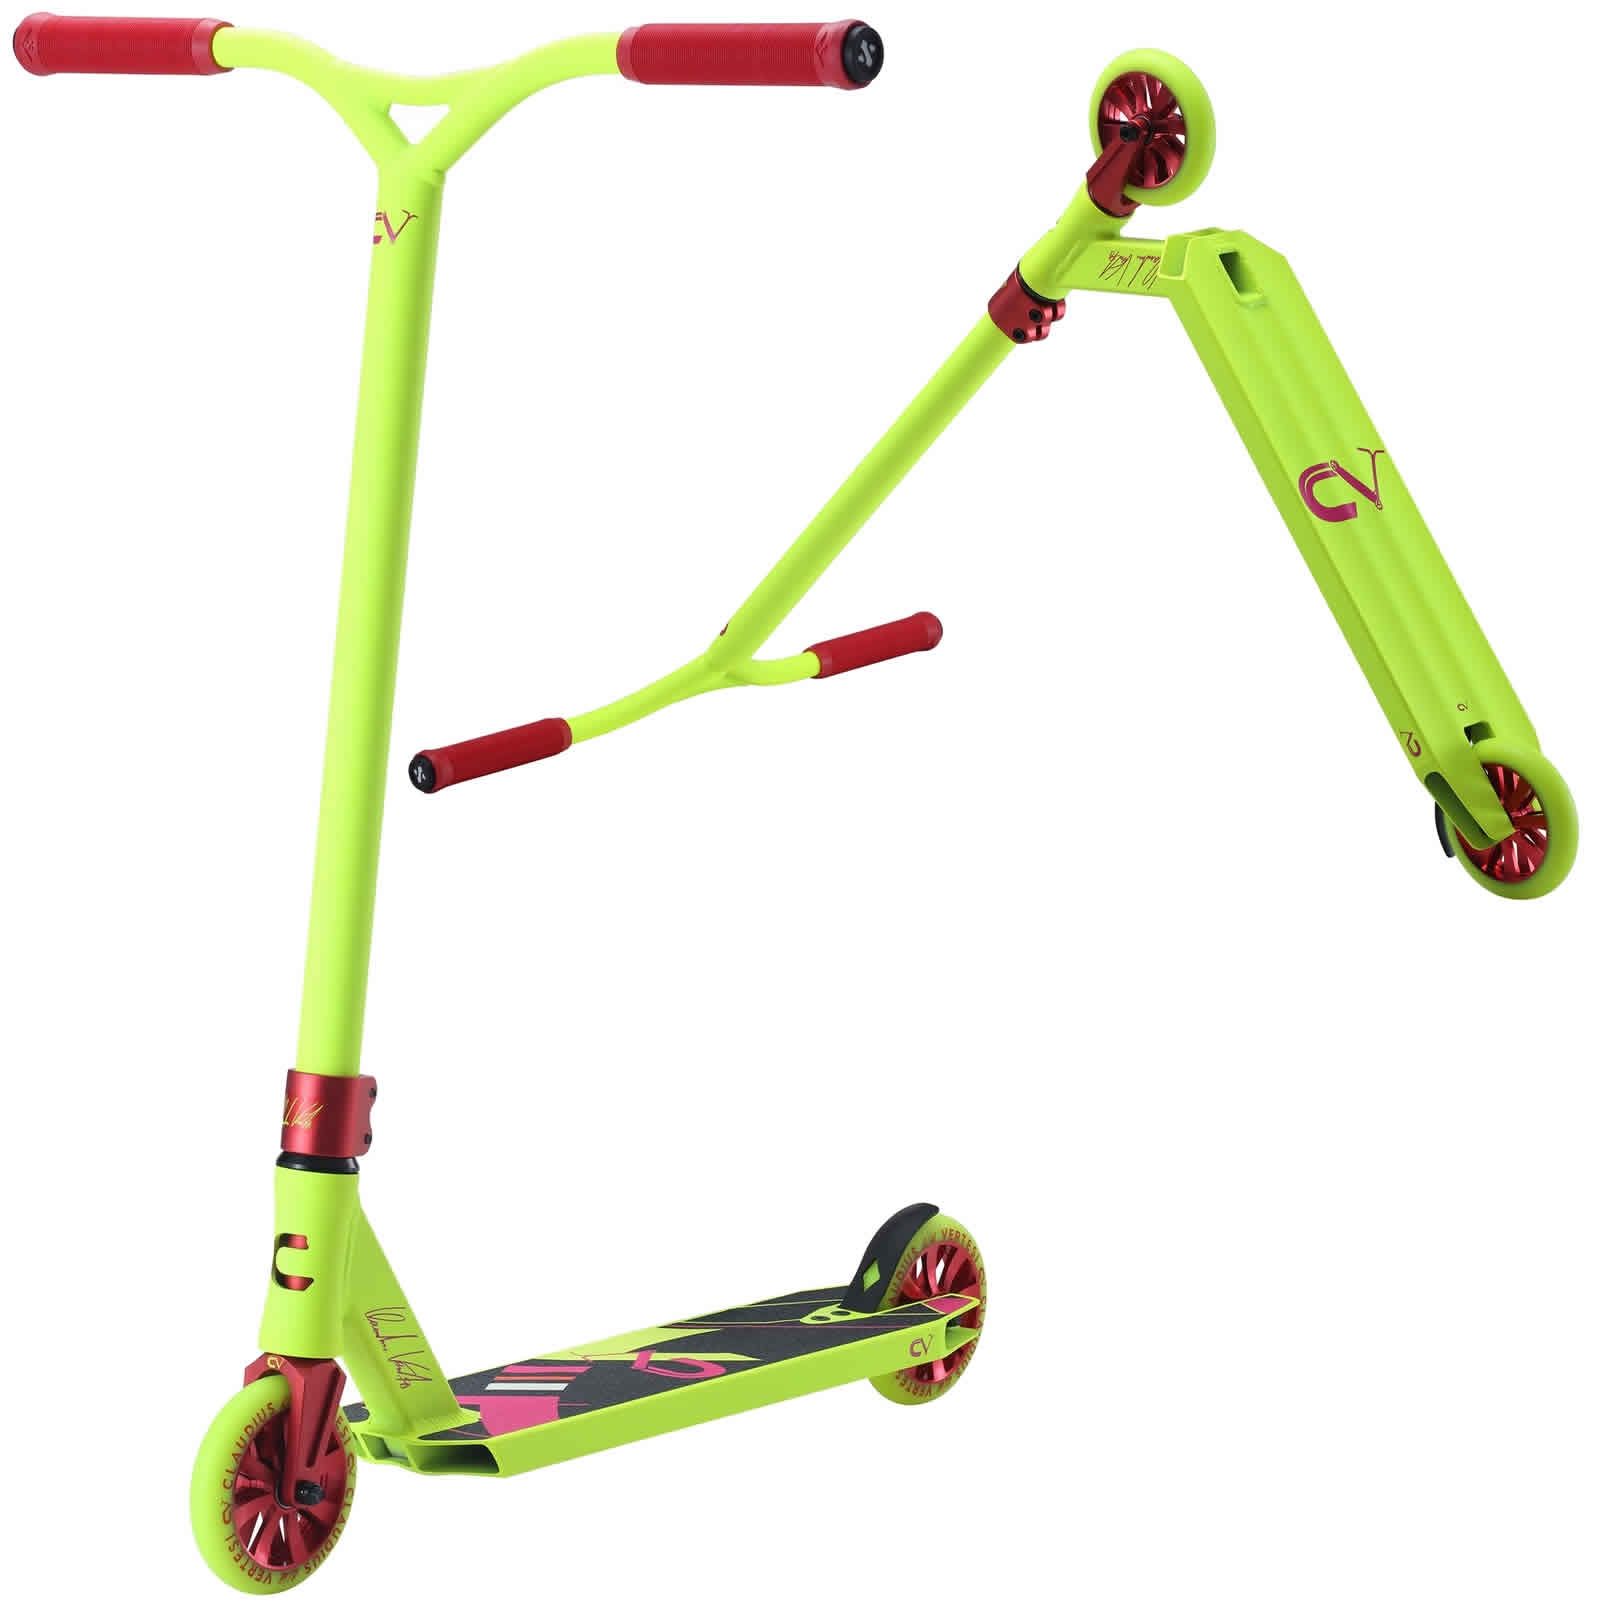 An image of Claudius Vertesi Signature Stunt Scooter - Neon Yellow